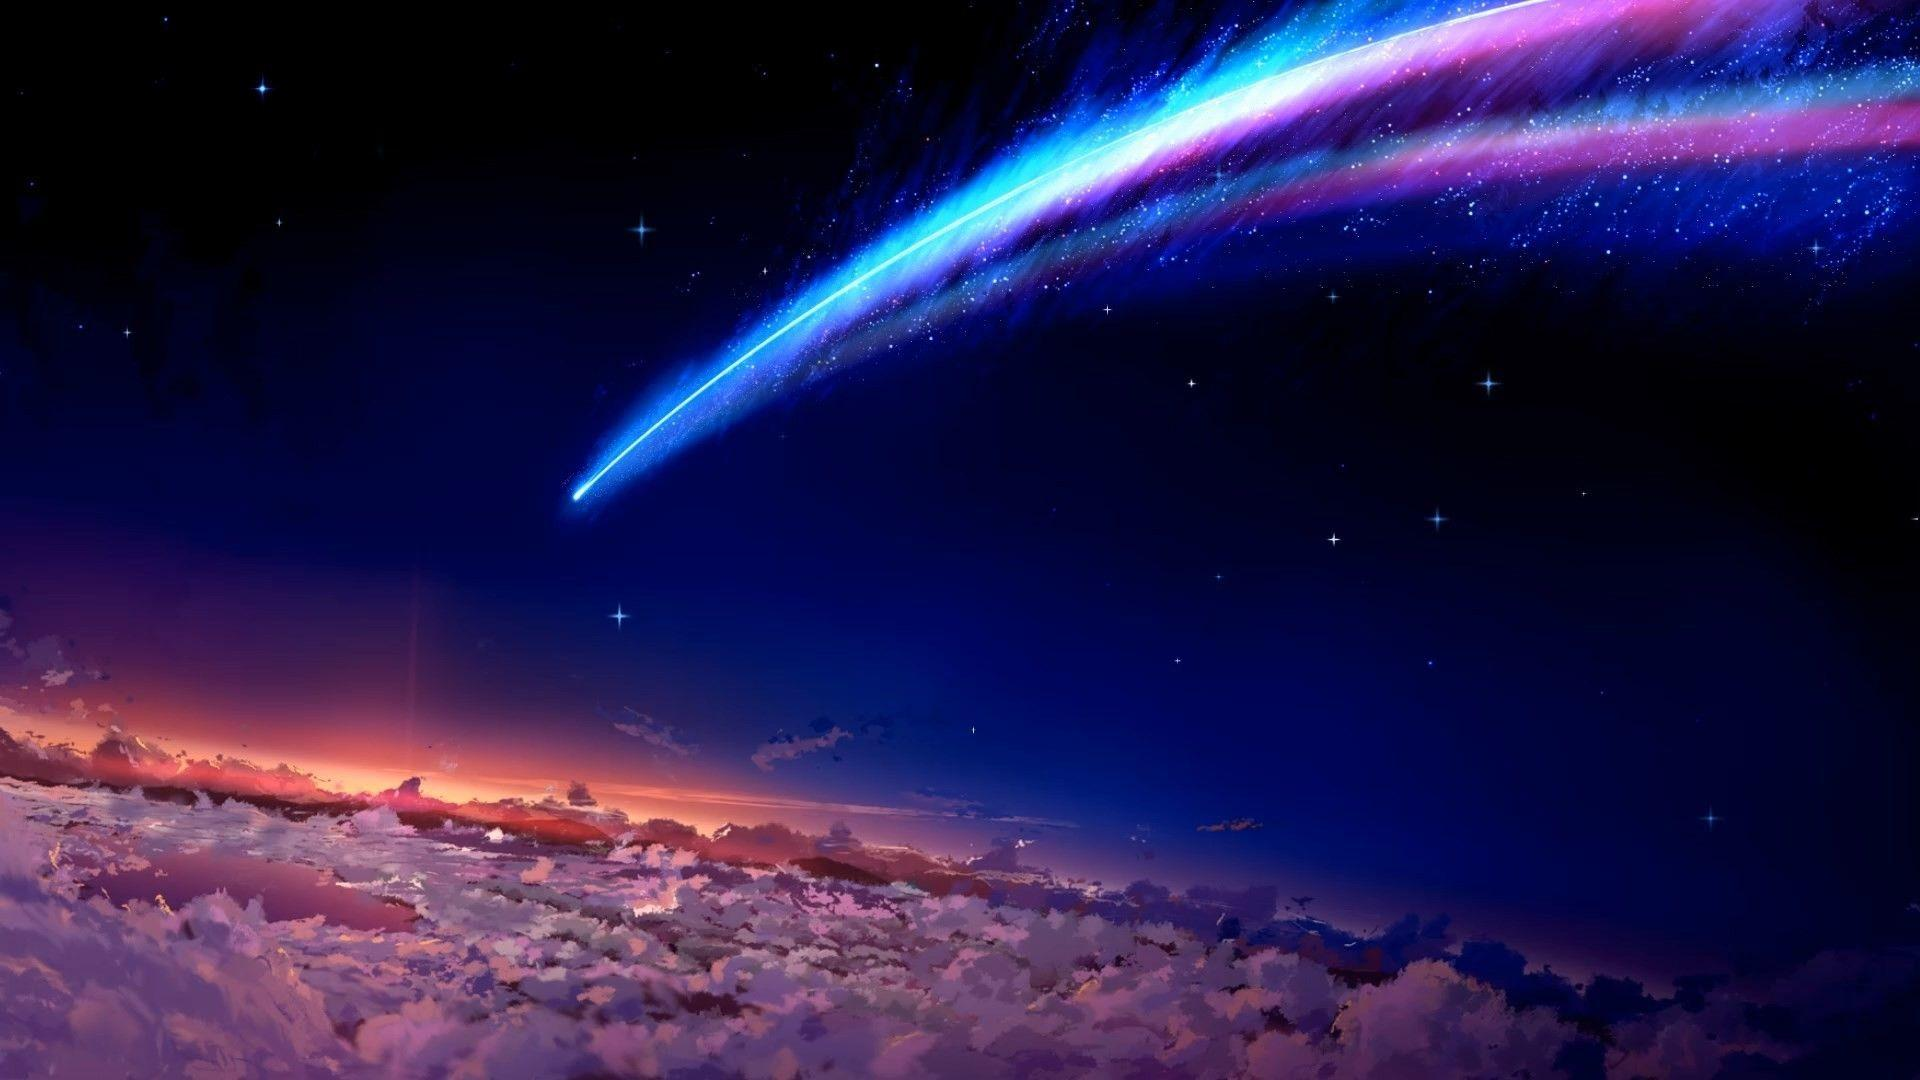 Anime Space Wallpapers Top Free Anime Space Backgrounds Wallpaperaccess